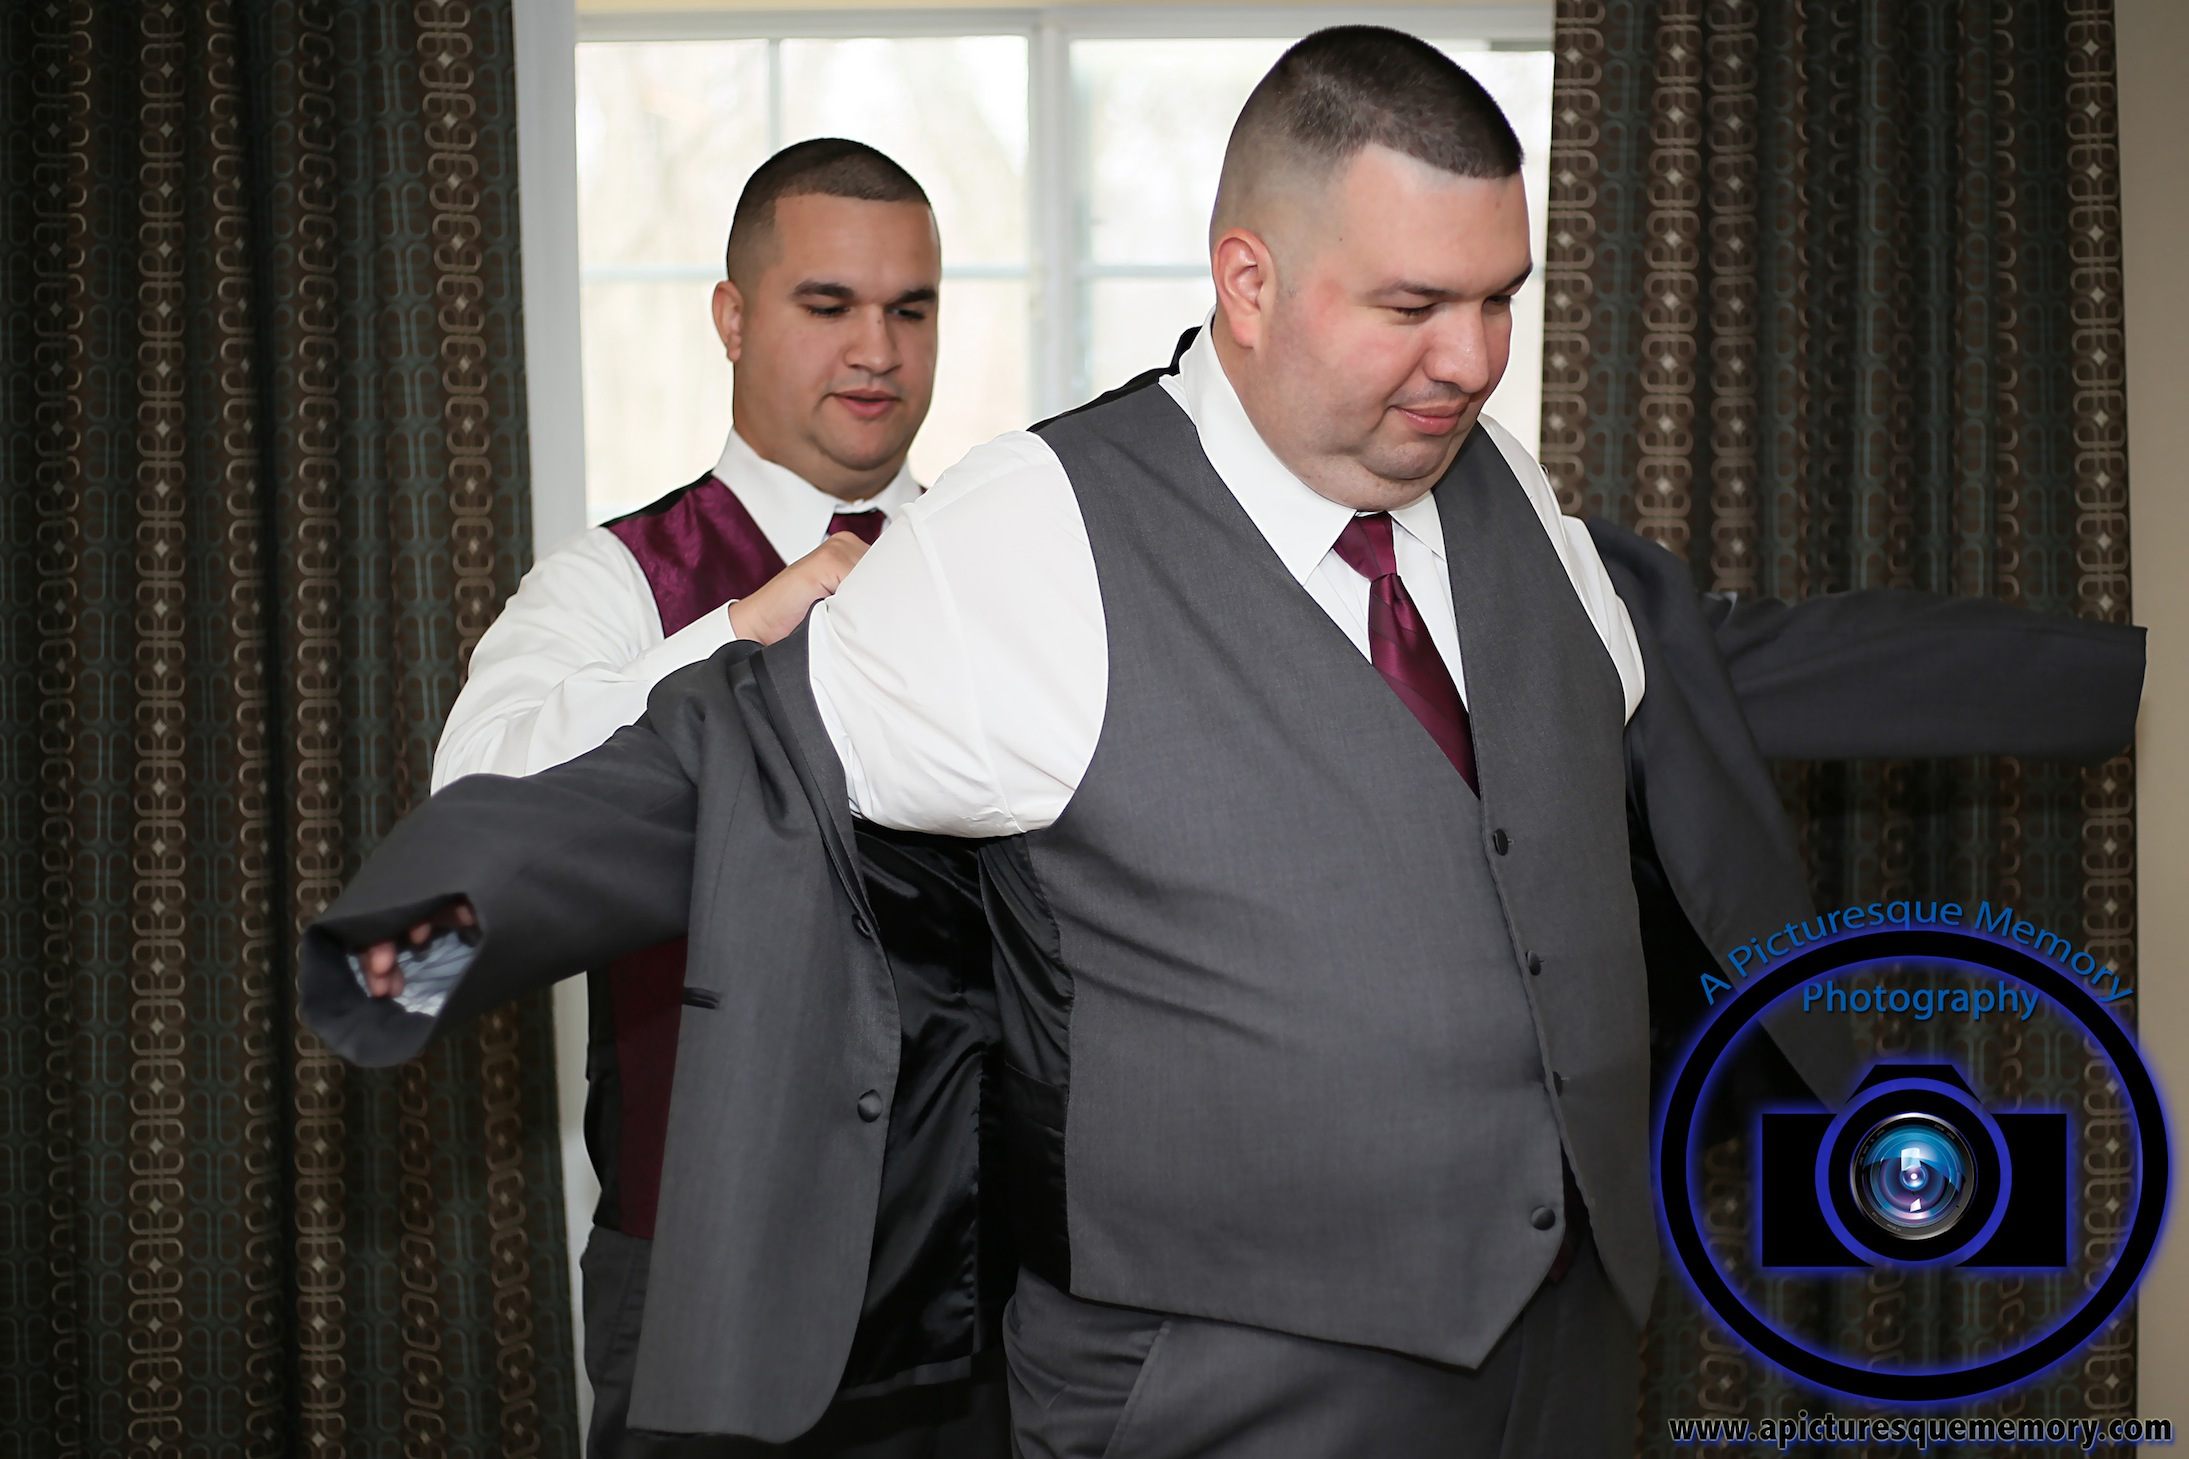 #njwedding, #njweddingphotography, #northbrunswickweddingphotographer#weddingphotos, #apicturesquememoryphotography, #staybridgesuitesweddingphotographer, #groom, #greysuits, #bestman